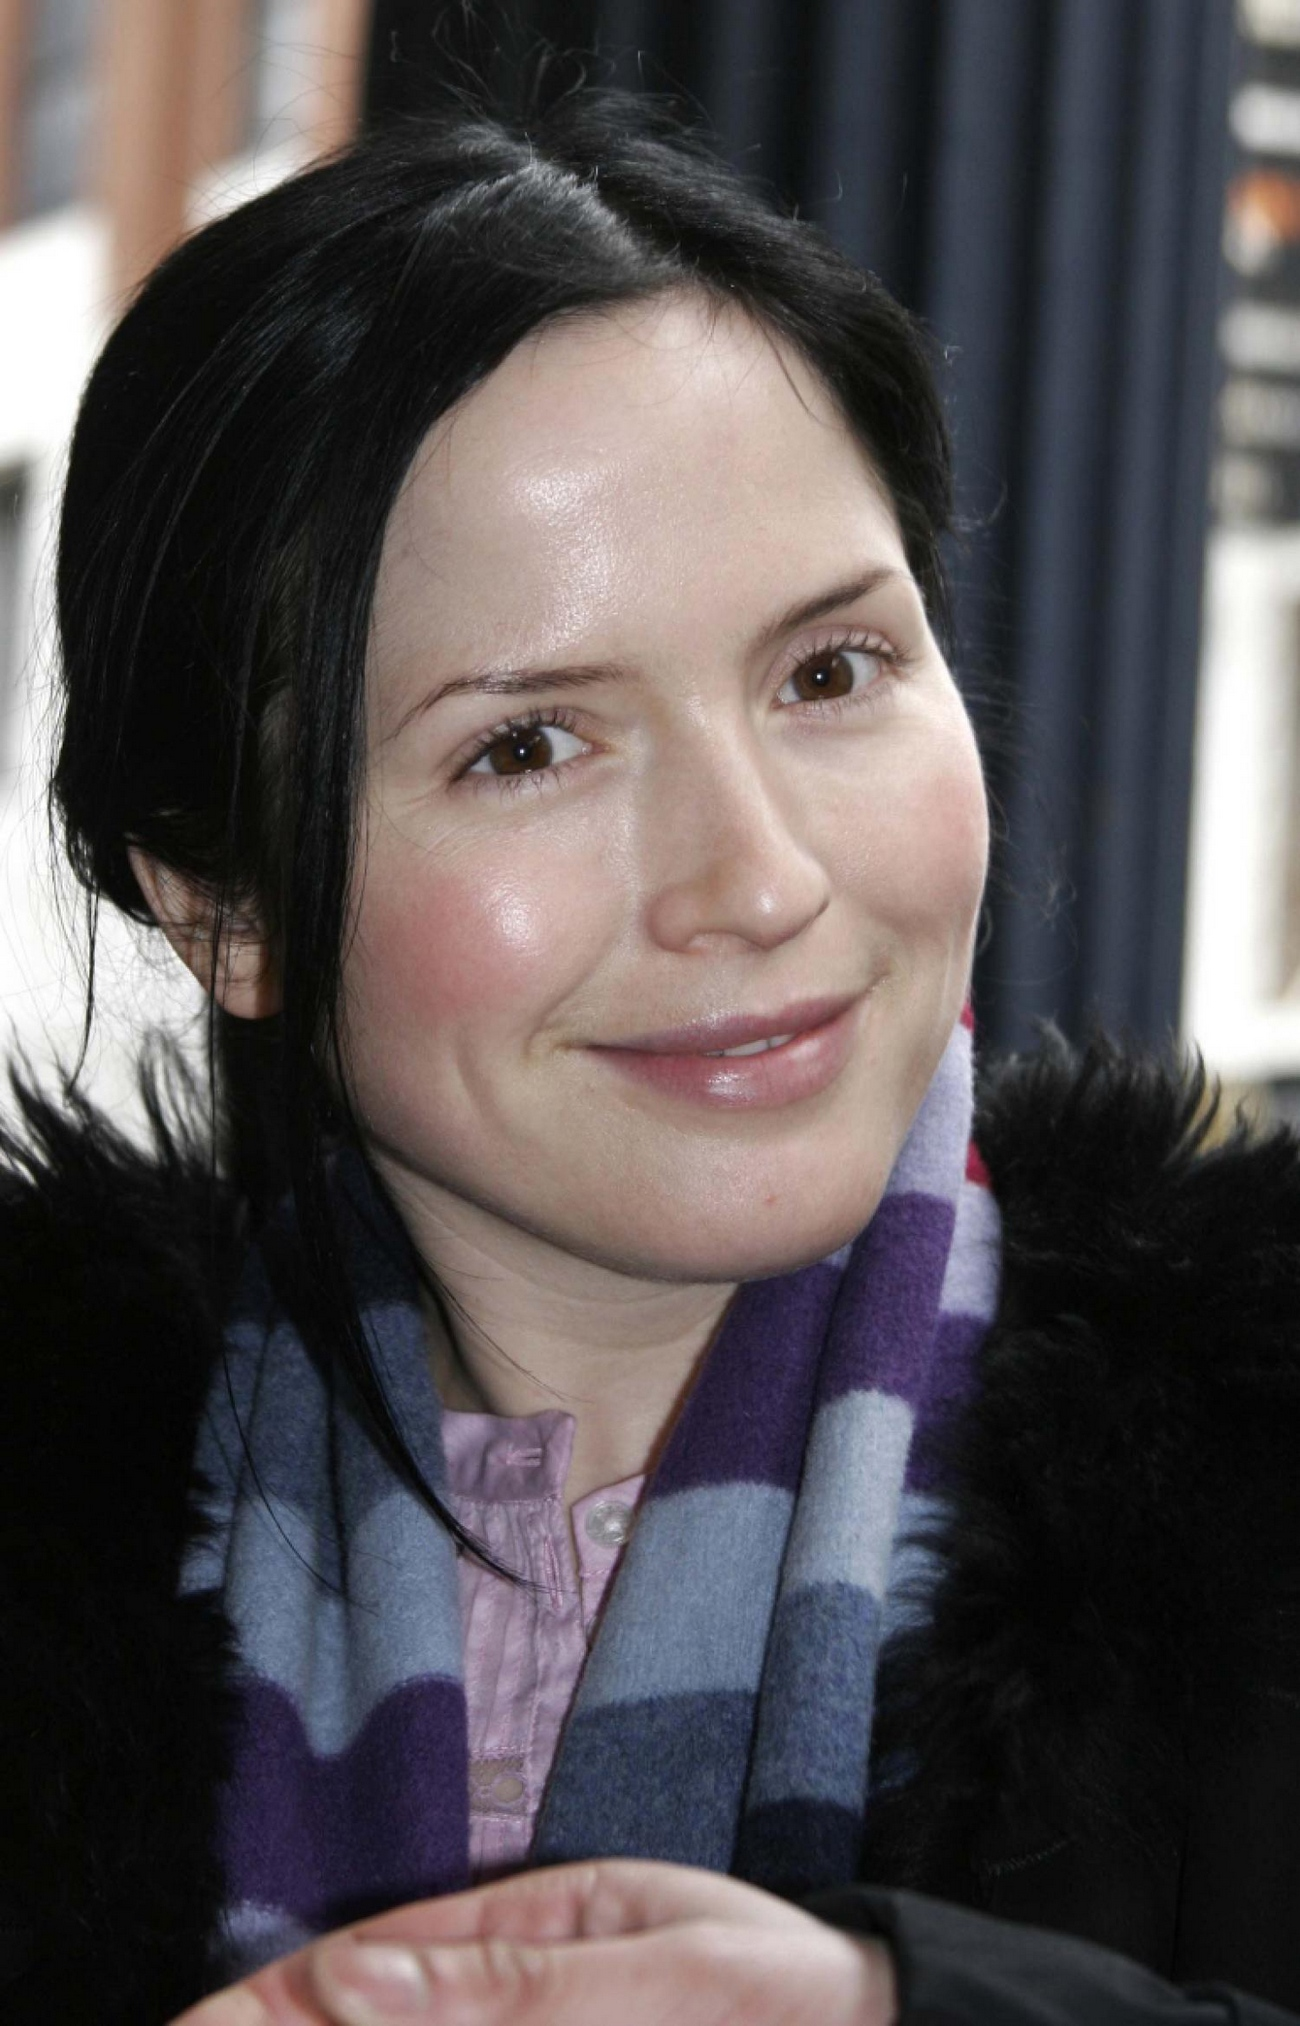 Andrea corr photo 94 of 168 pics wallpaper photo 403574 theplace2 download original altavistaventures Choice Image